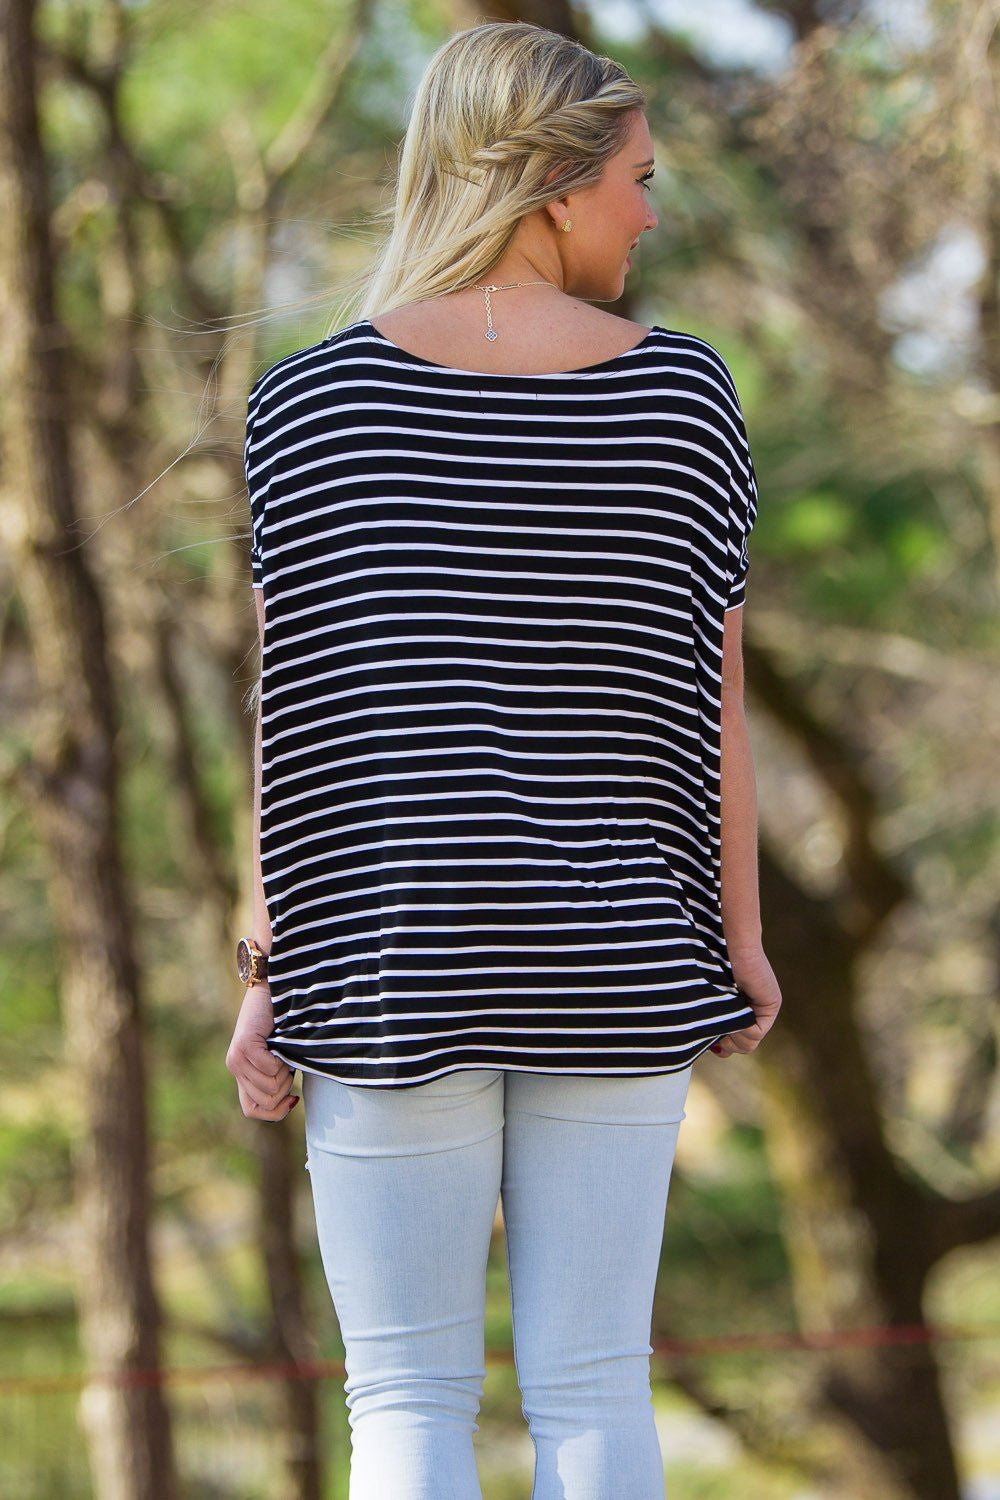 Short Sleeve Tiny Stripe Piko Top - Black/White - Piko Clothing